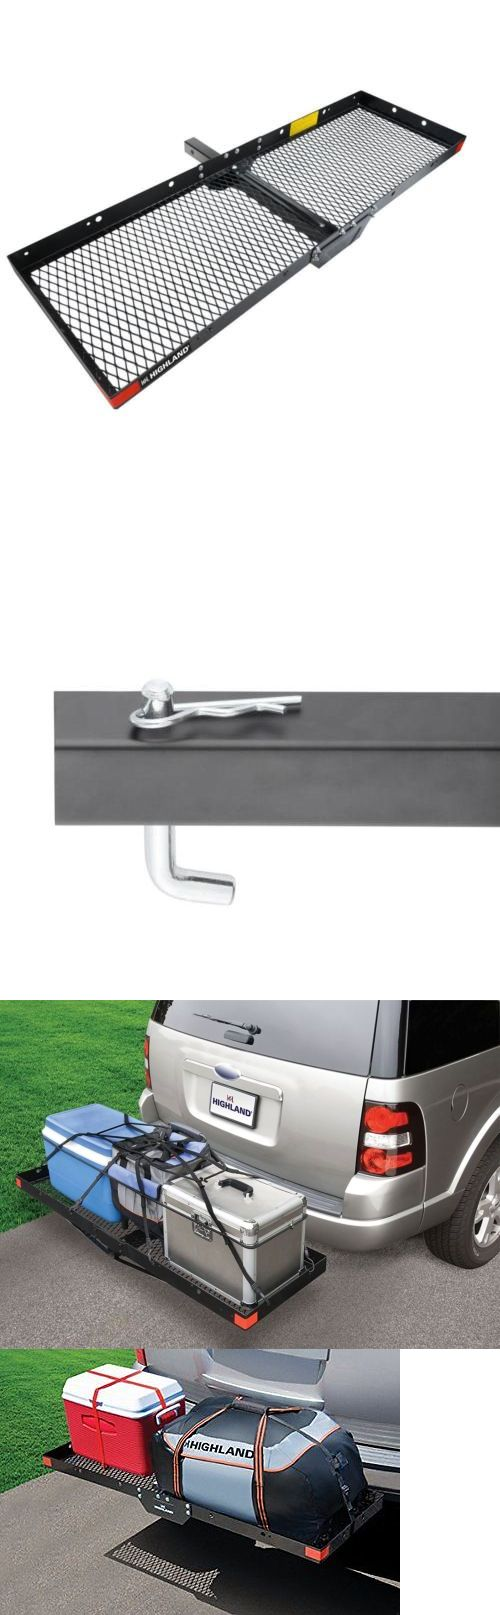 Camping Storage 181390: Cargo Carrier Hitch Mount Receiver Luggage Rack Travel Camping Gear Suv Rv 2 In BUY IT NOW ONLY: $76.94